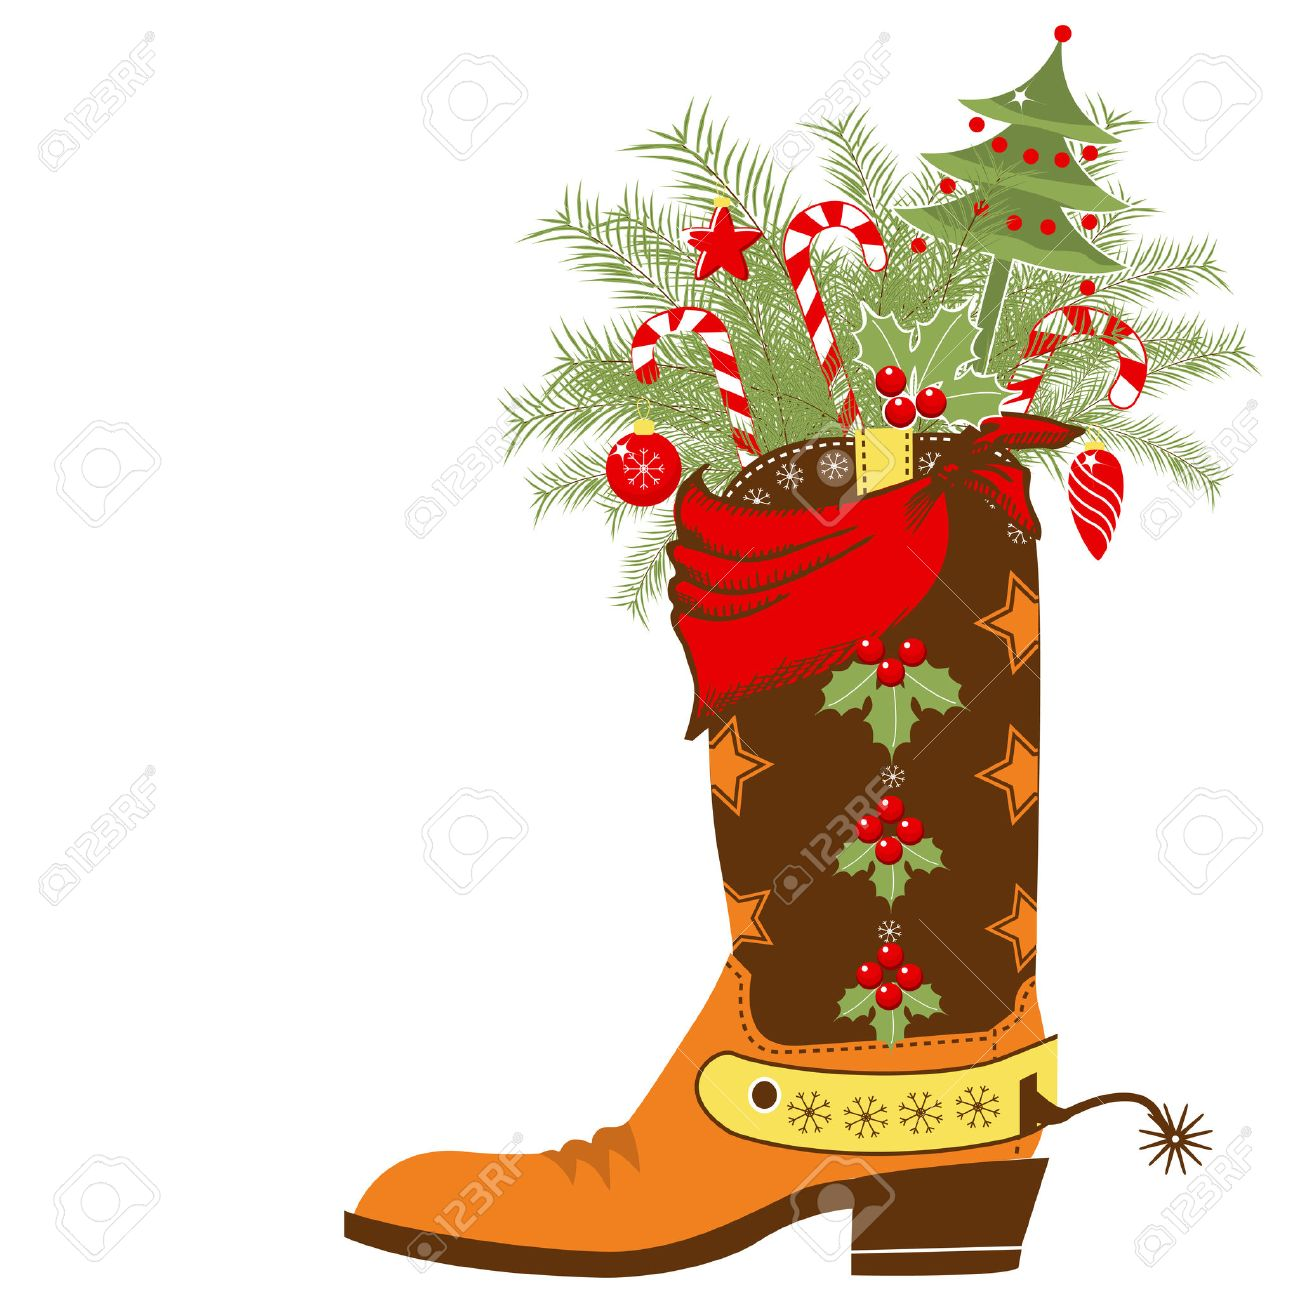 Cowboy Christmas Card With Boot And Wnter Holiday Elements.Vector Shoe  Isolated On White Background